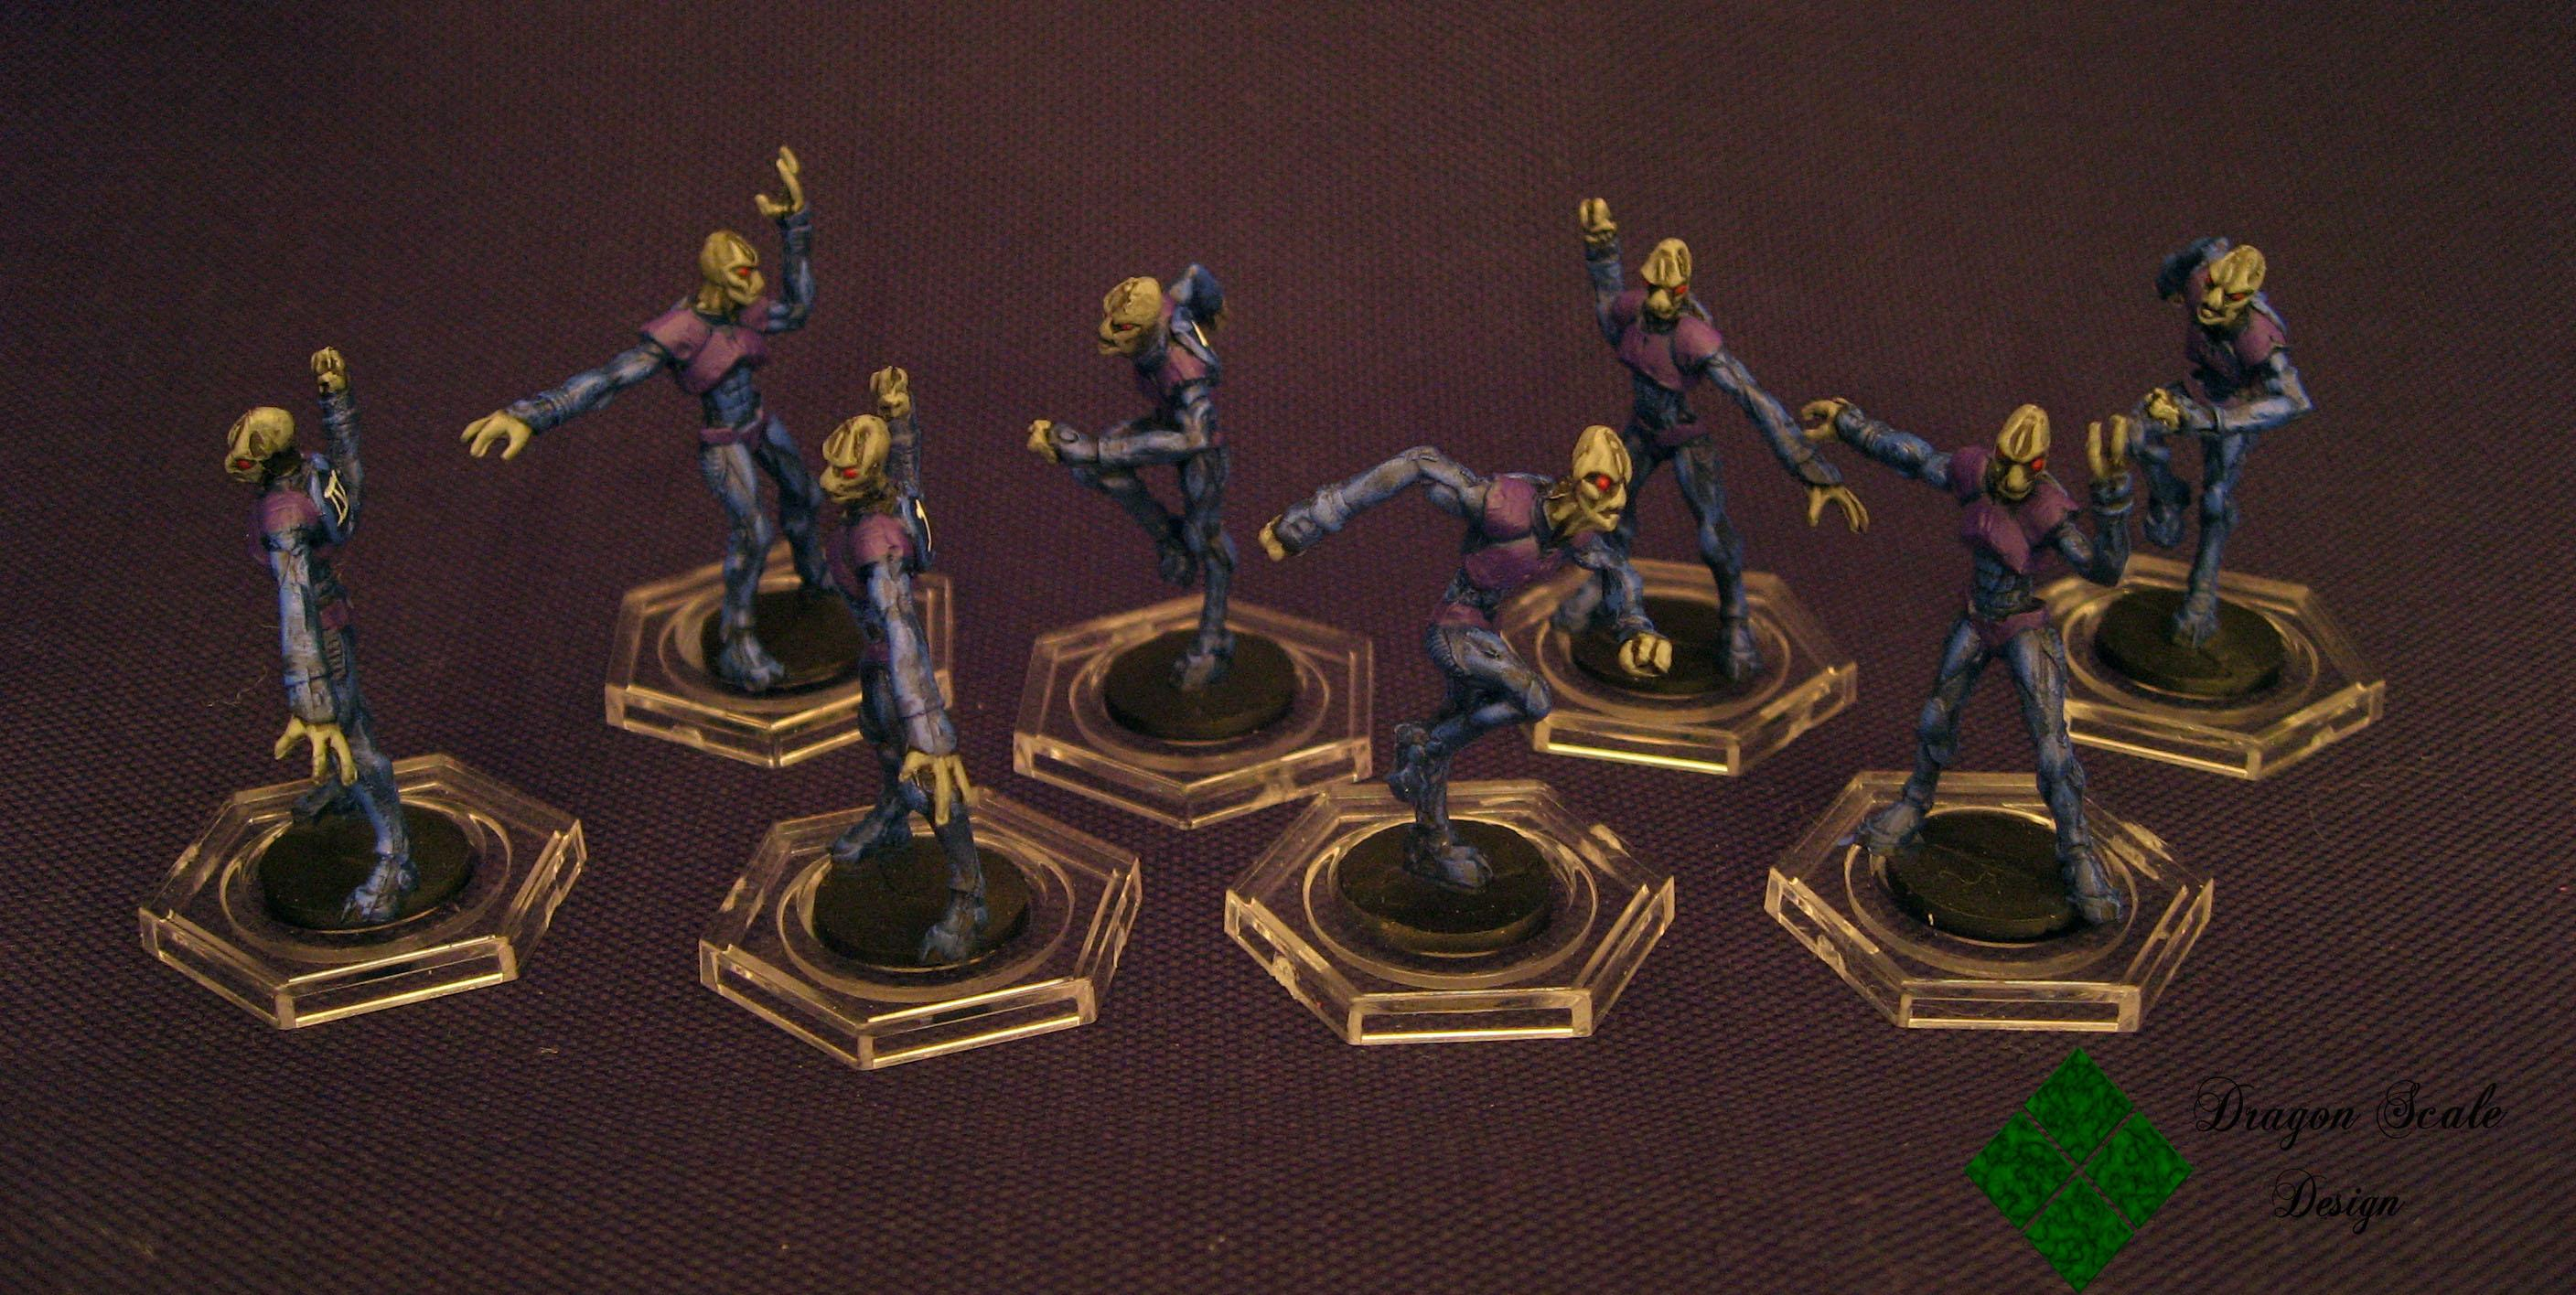 Corporation, Dreadball, Judwan, Marauders, Mvp, Nameless, Orx, Robots, Veer-myn, Zzor